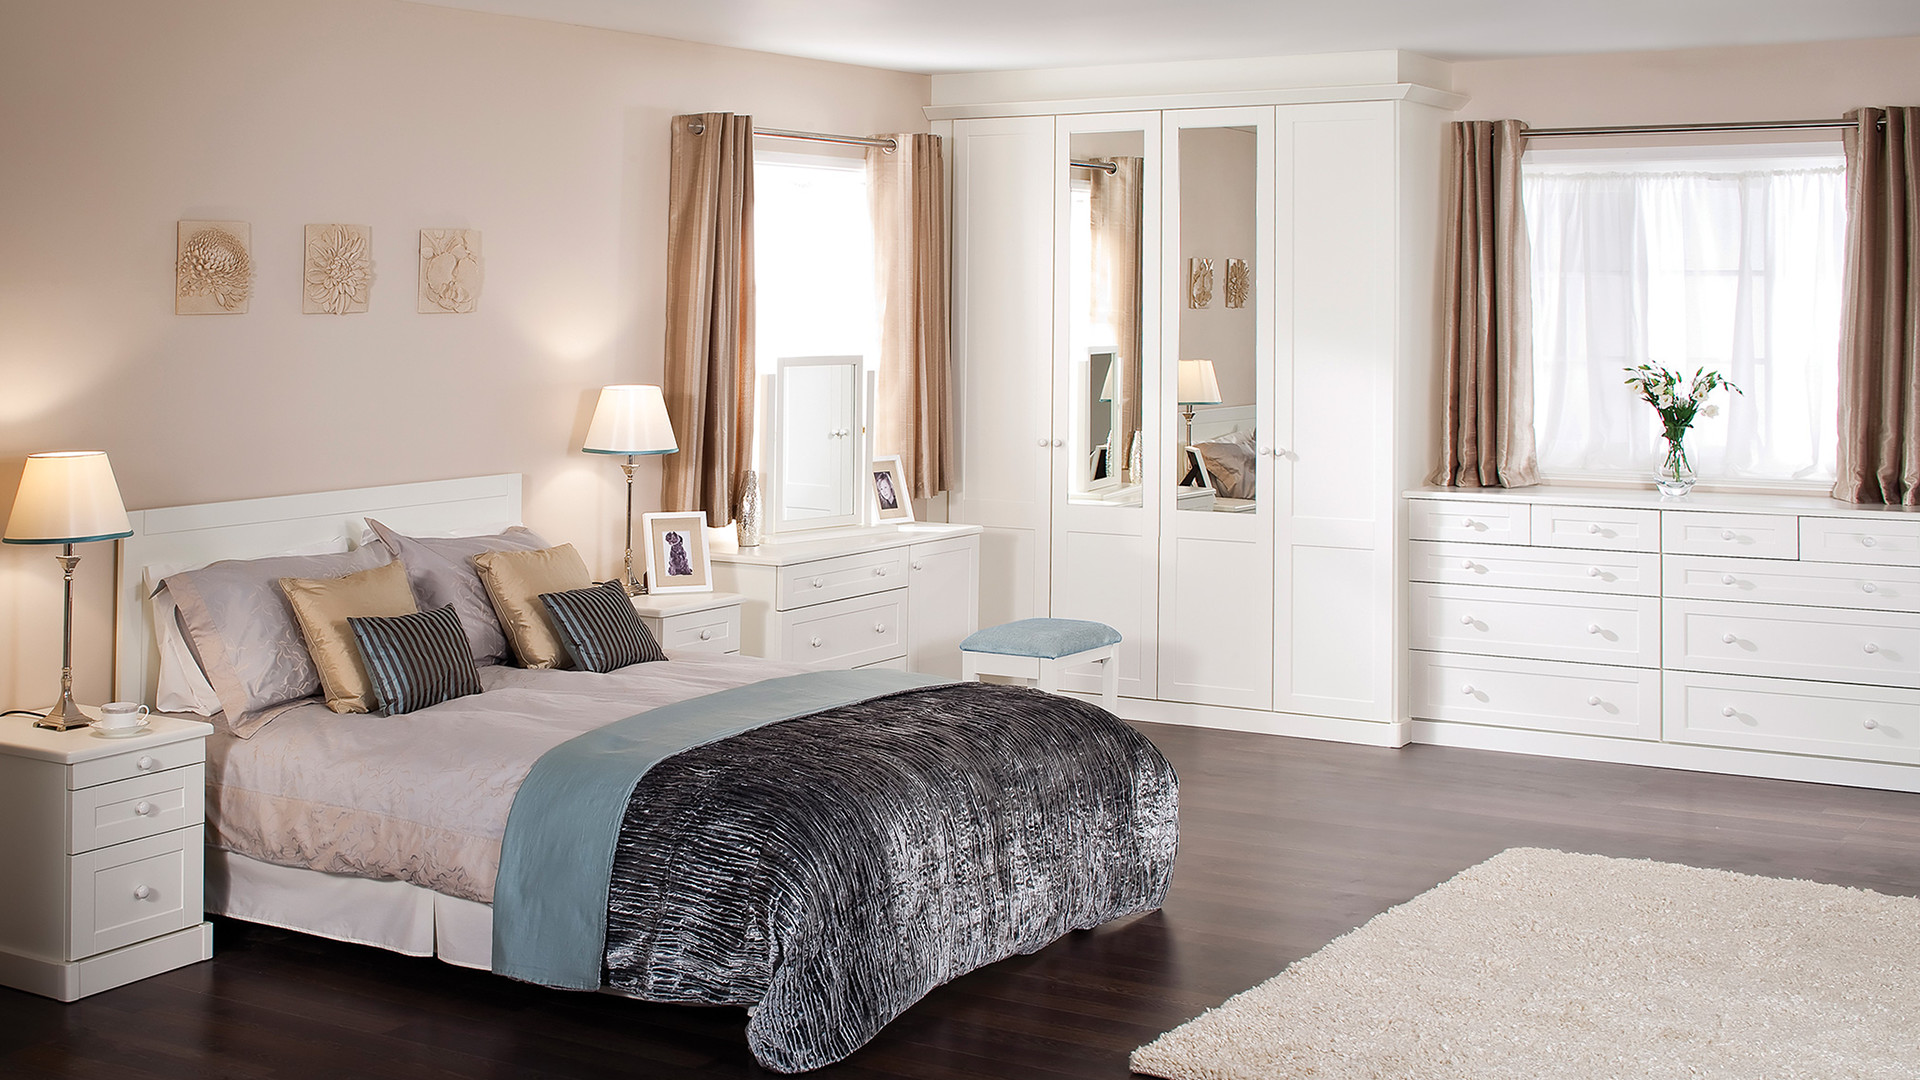 Interiors fitted bedroom furniture wardrobes uk for Bedroom furniture uk